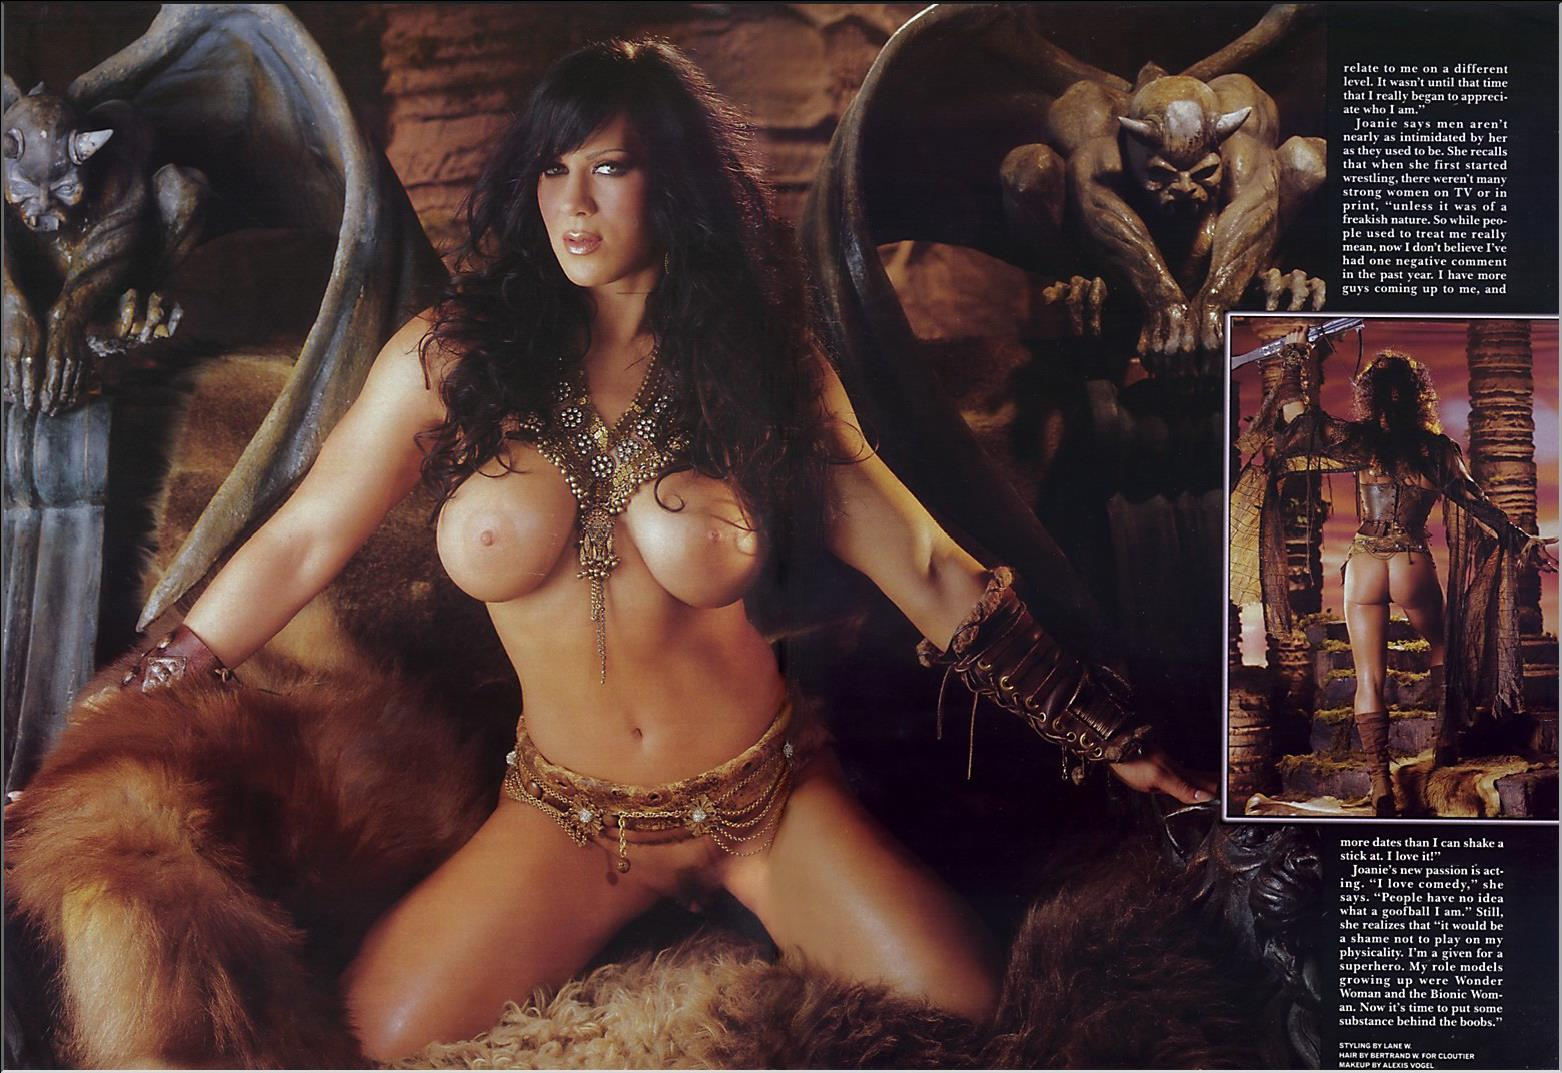 The movie xena legend porn 3gp anime pics